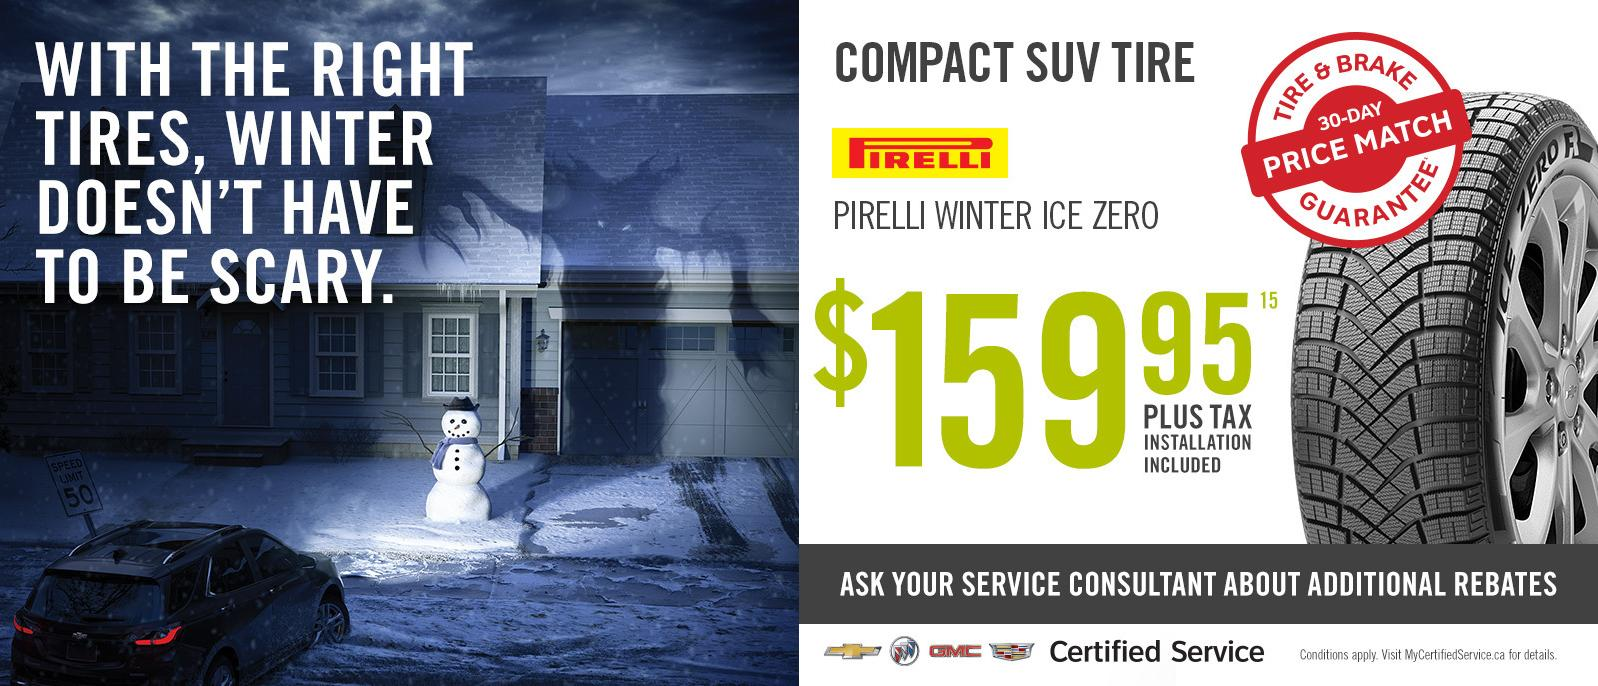 Winter Tire Special Deal Compact SUV Goodyear from $99.95 VanDusen Ajax Ontario